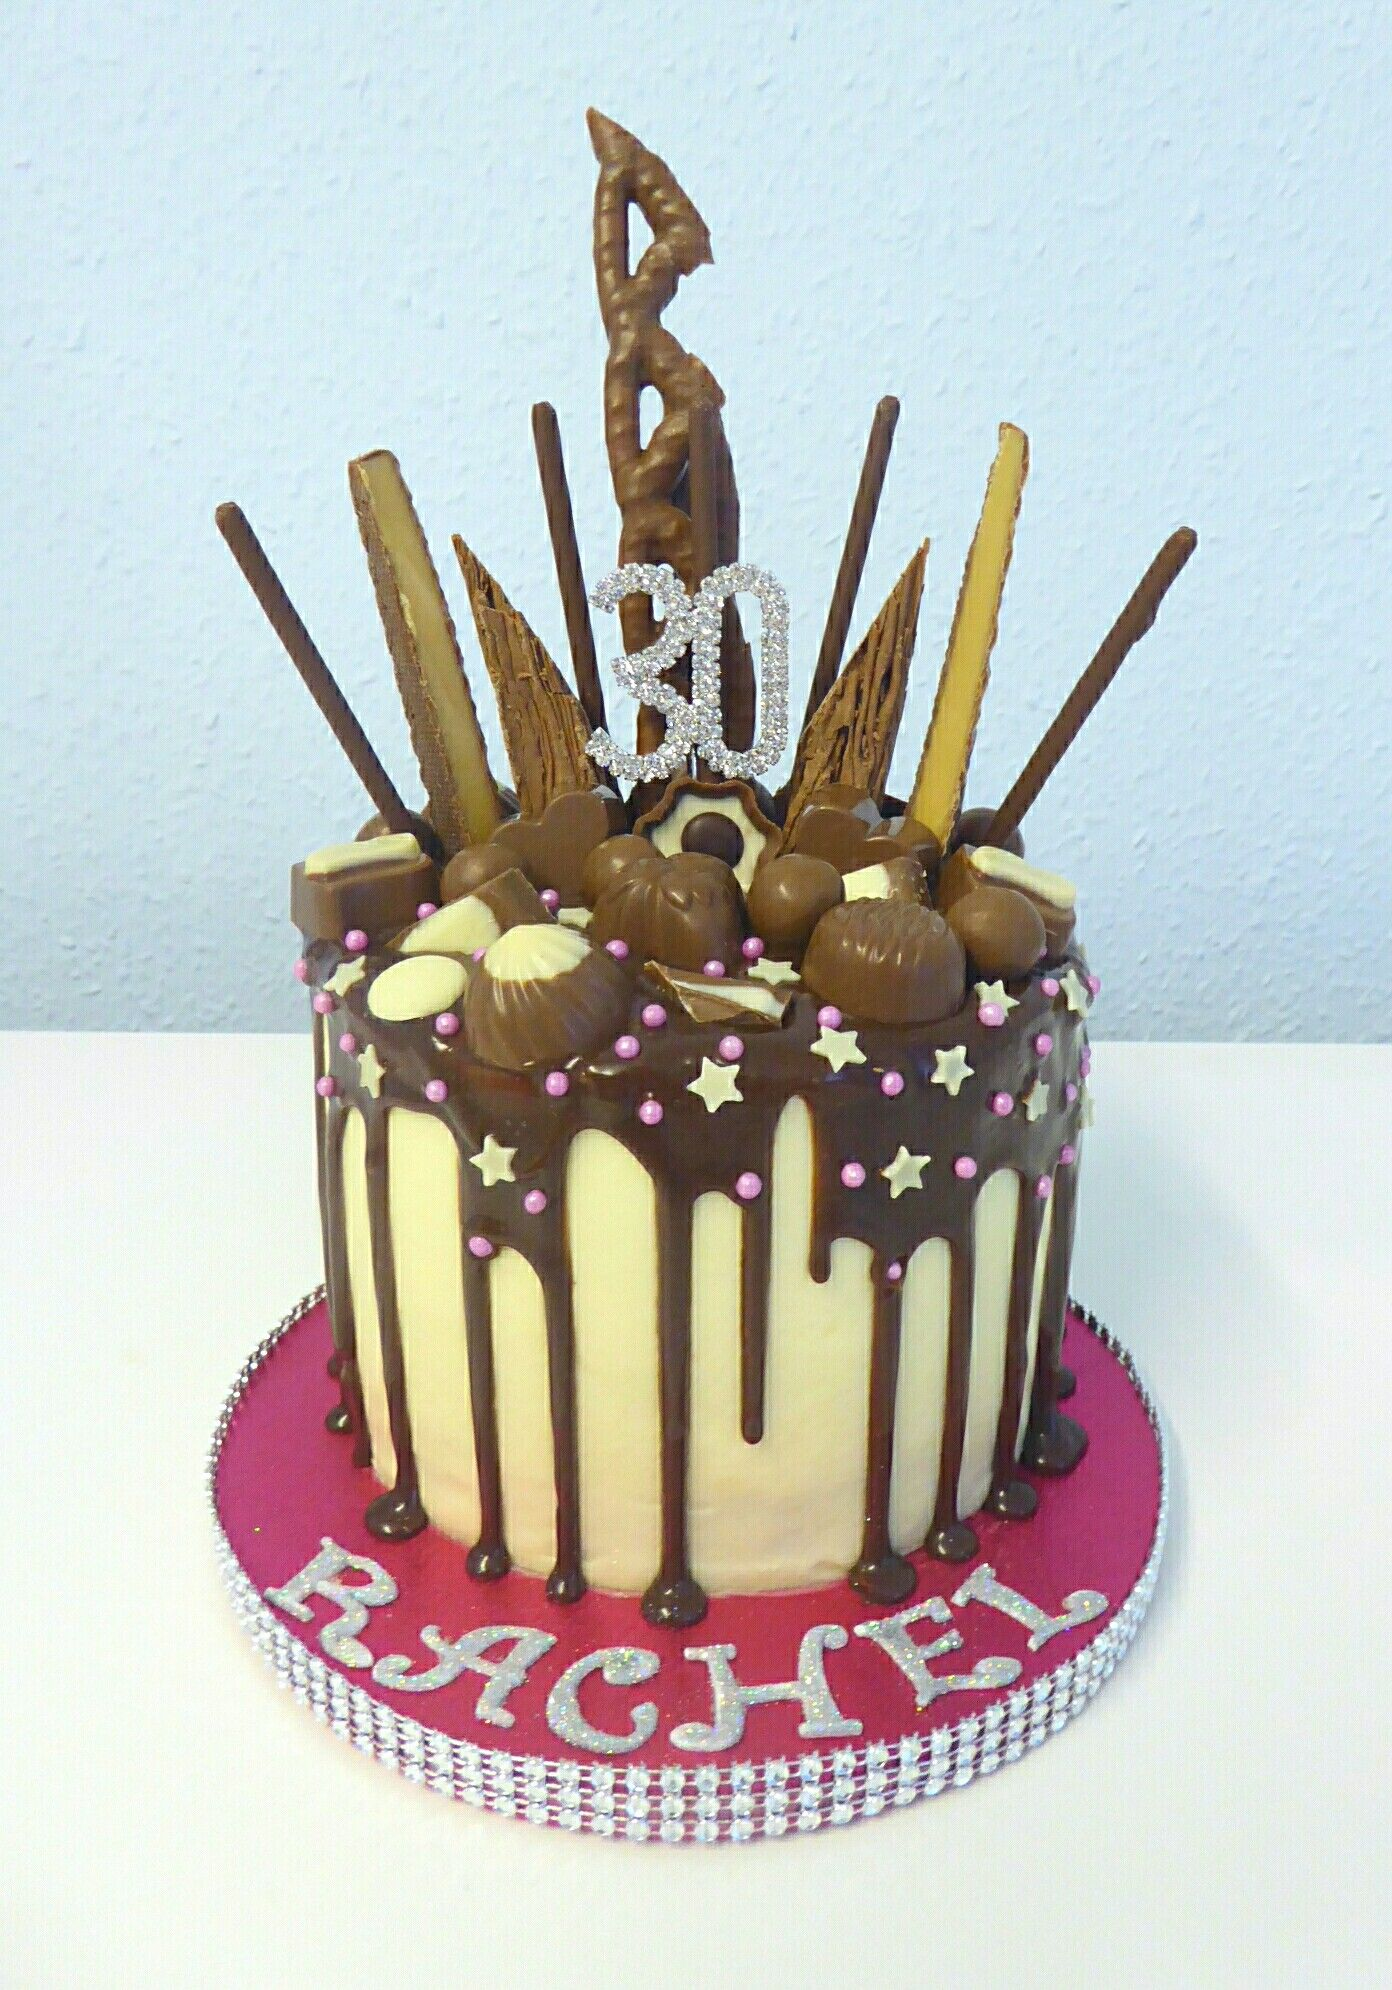 Cool A Lovely 30Th Birthday Cake For A Girl Who Loves Her Chocolate Funny Birthday Cards Online Inifodamsfinfo